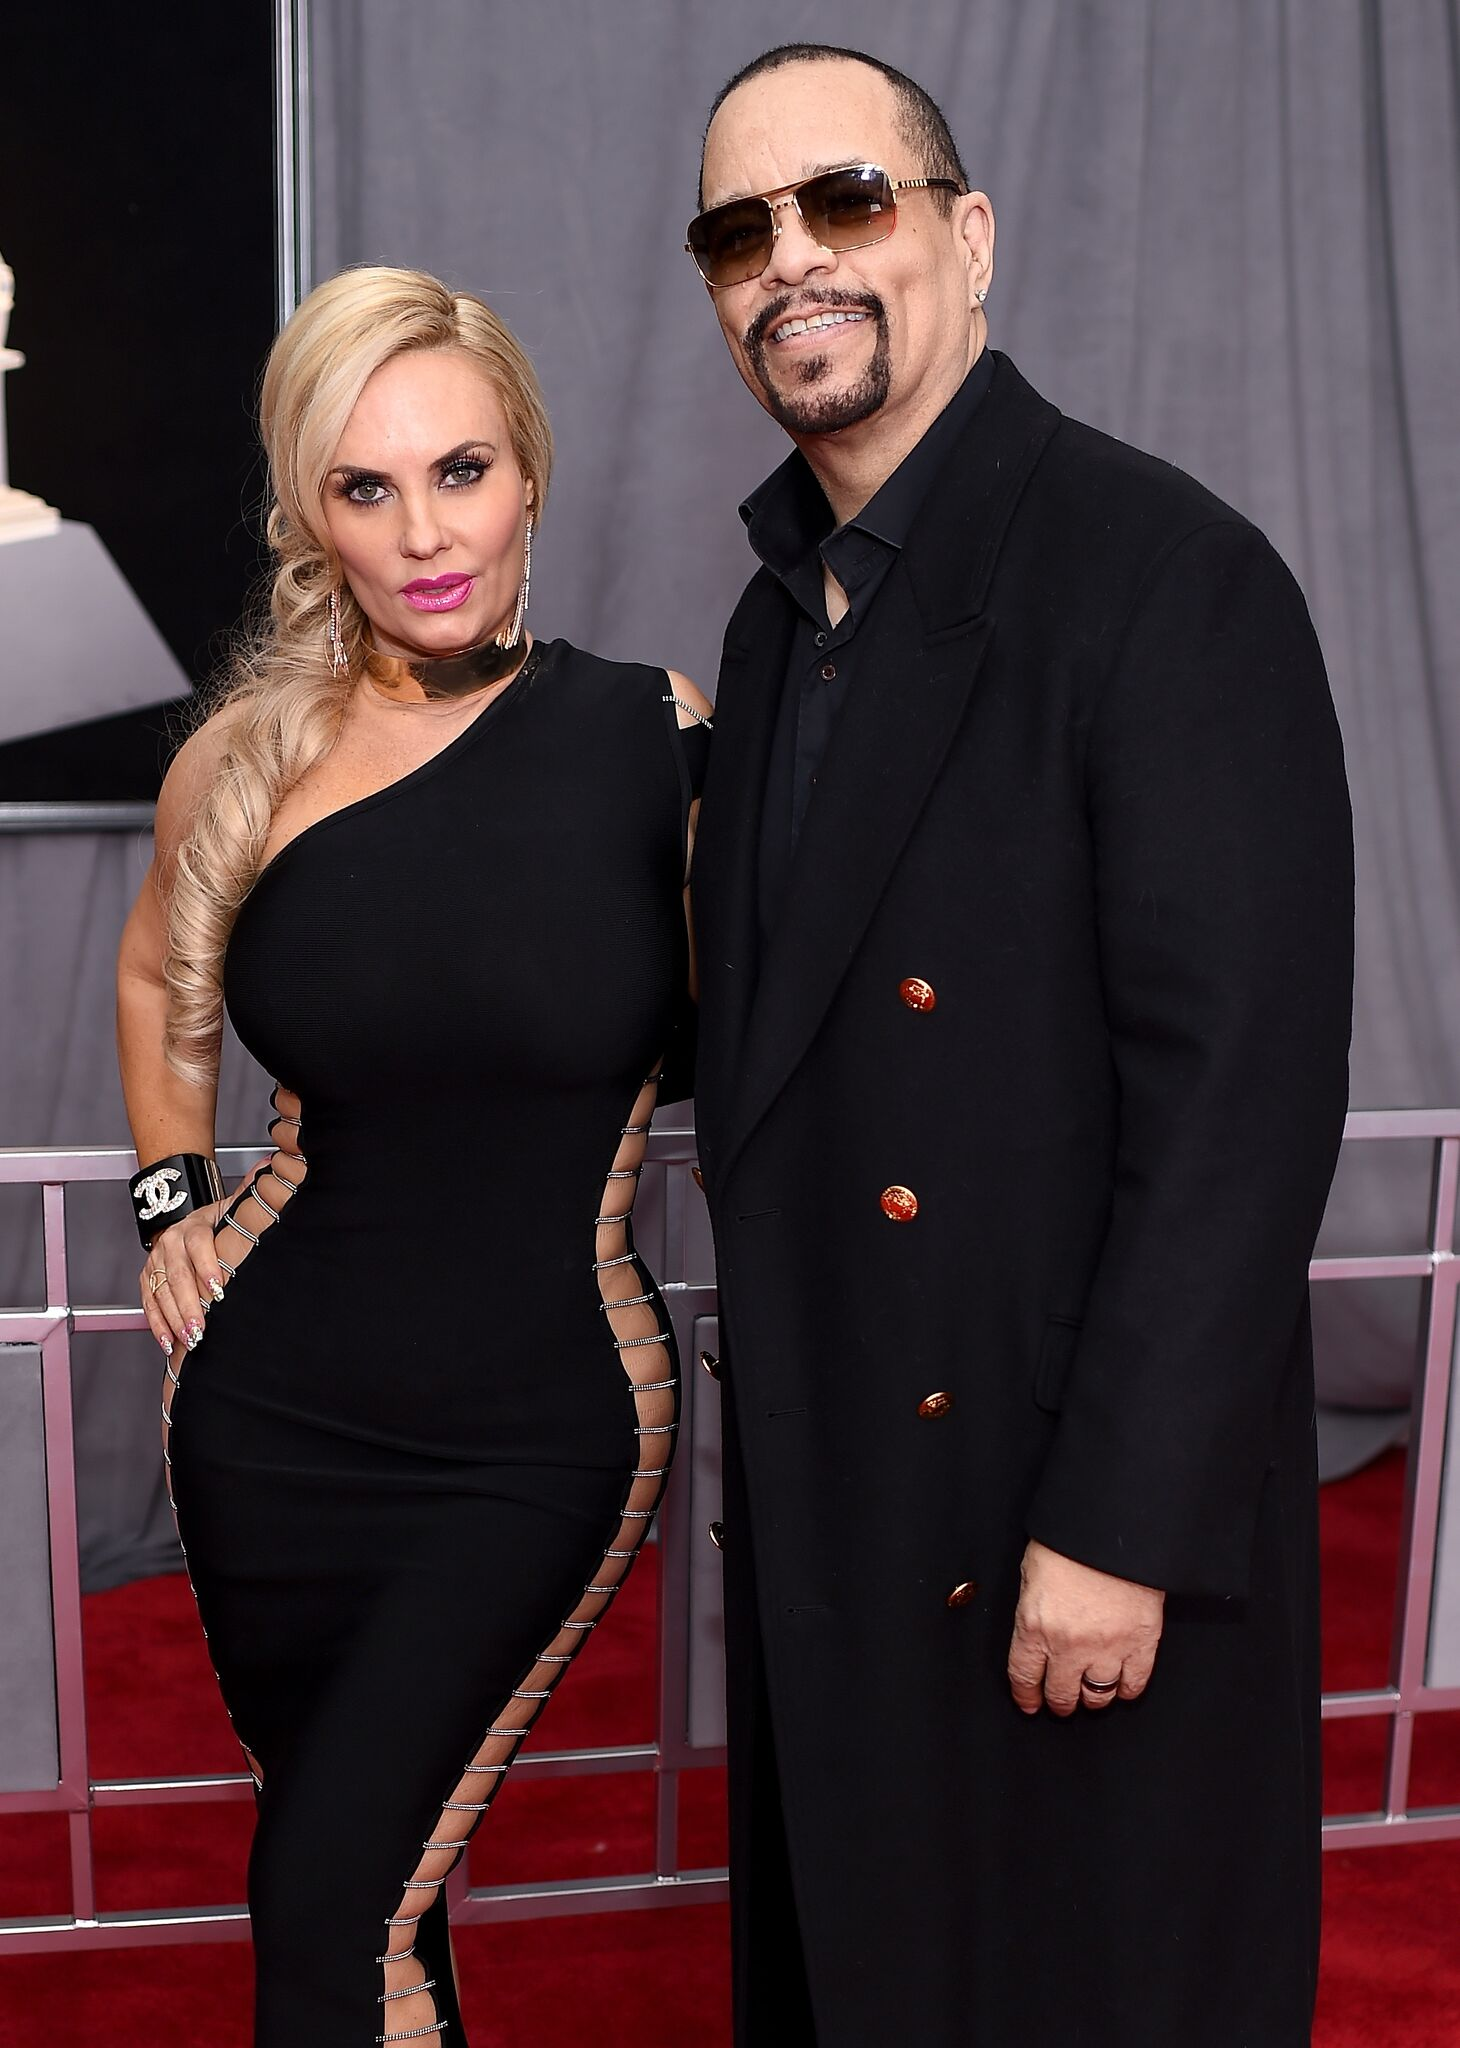 Coco Austin and recording artist Ice-T attend the 60th Annual GRAMMY Awards at Madison Square Garden | Getty Images / Global Images Ukraine